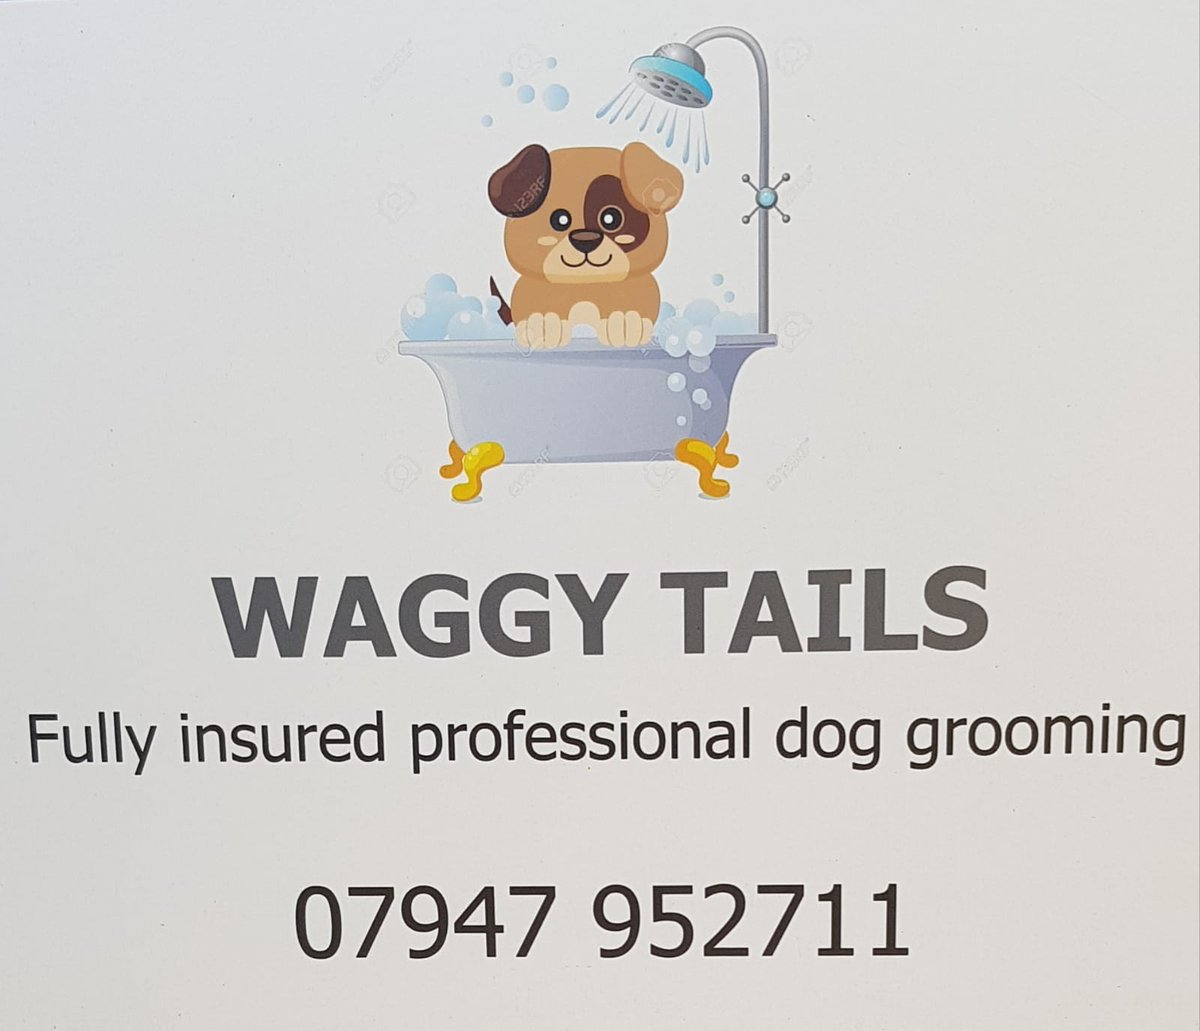 If anyone is looking for a dog groomer in Liverpool I can highly recommend #waggytails  anyone who knows me knows I'm sooooo fussy when it comes to my boy @the_cockapoo they provide such a personal service and will do what you ask ! Please retweet and support #localbusiness  <br>http://pic.twitter.com/sJsmTijTCE